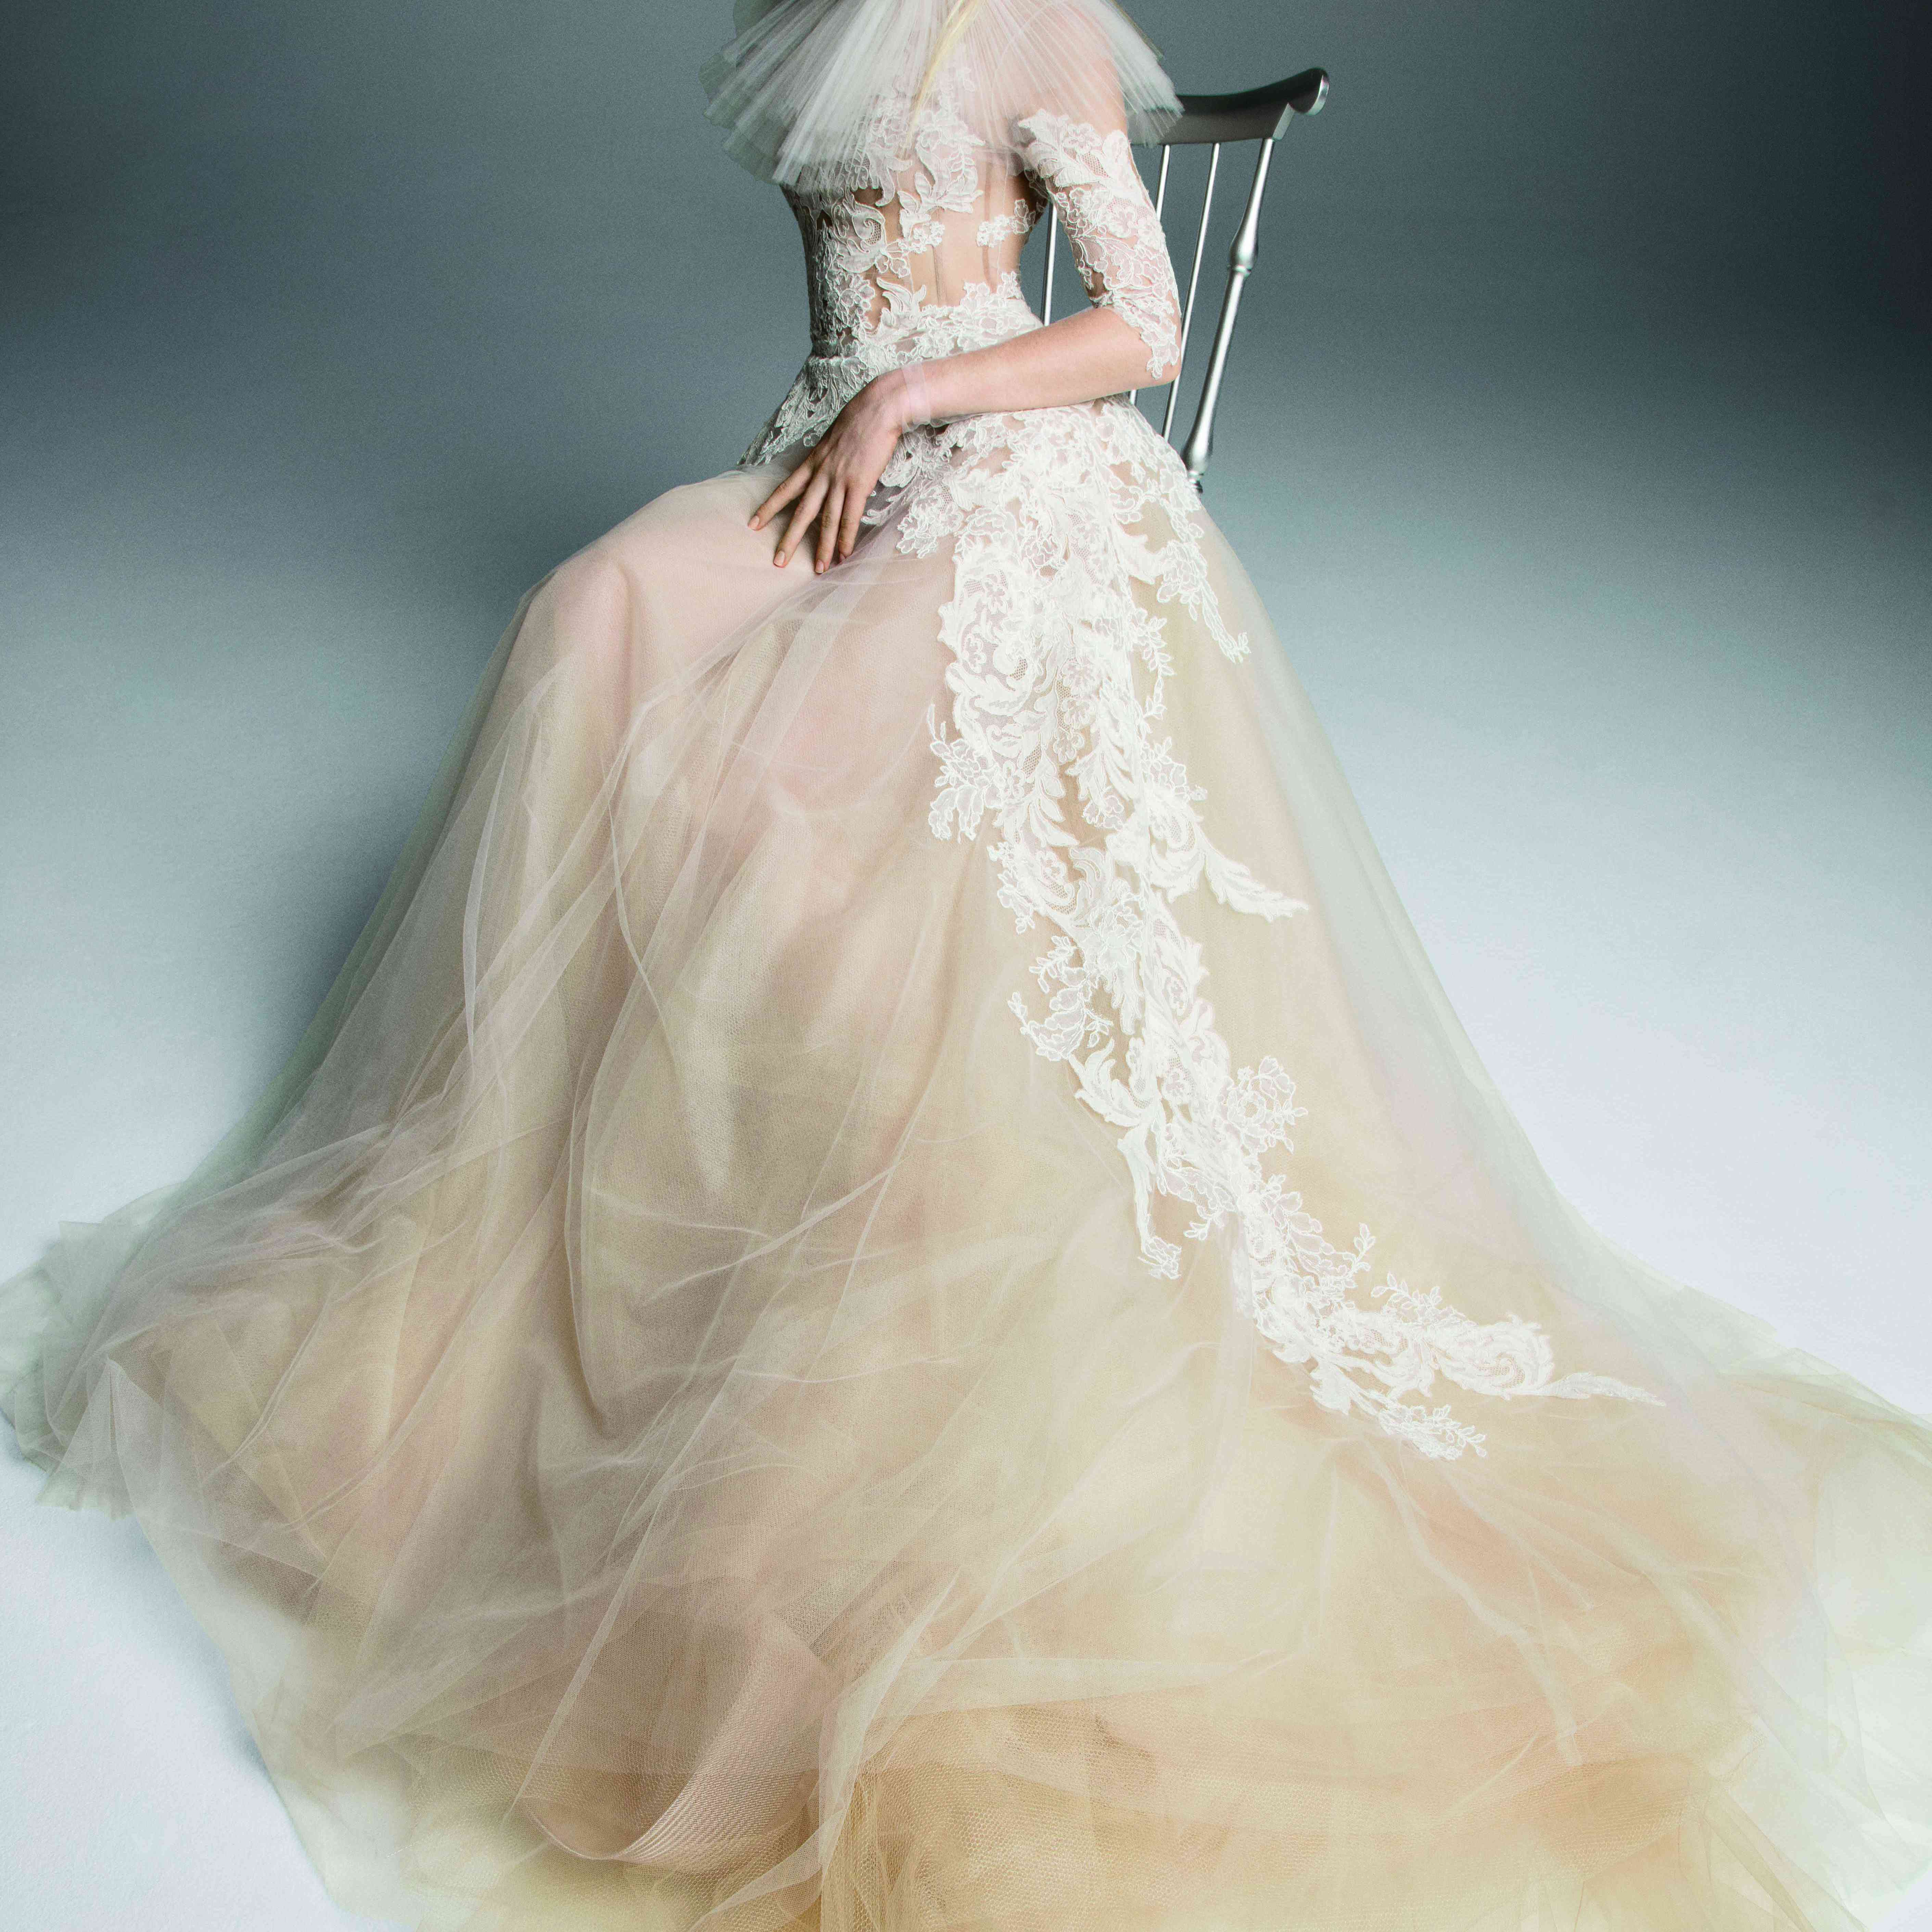 Model in nude tulle long-sleeve gown with lace accents on the bodice and skirt